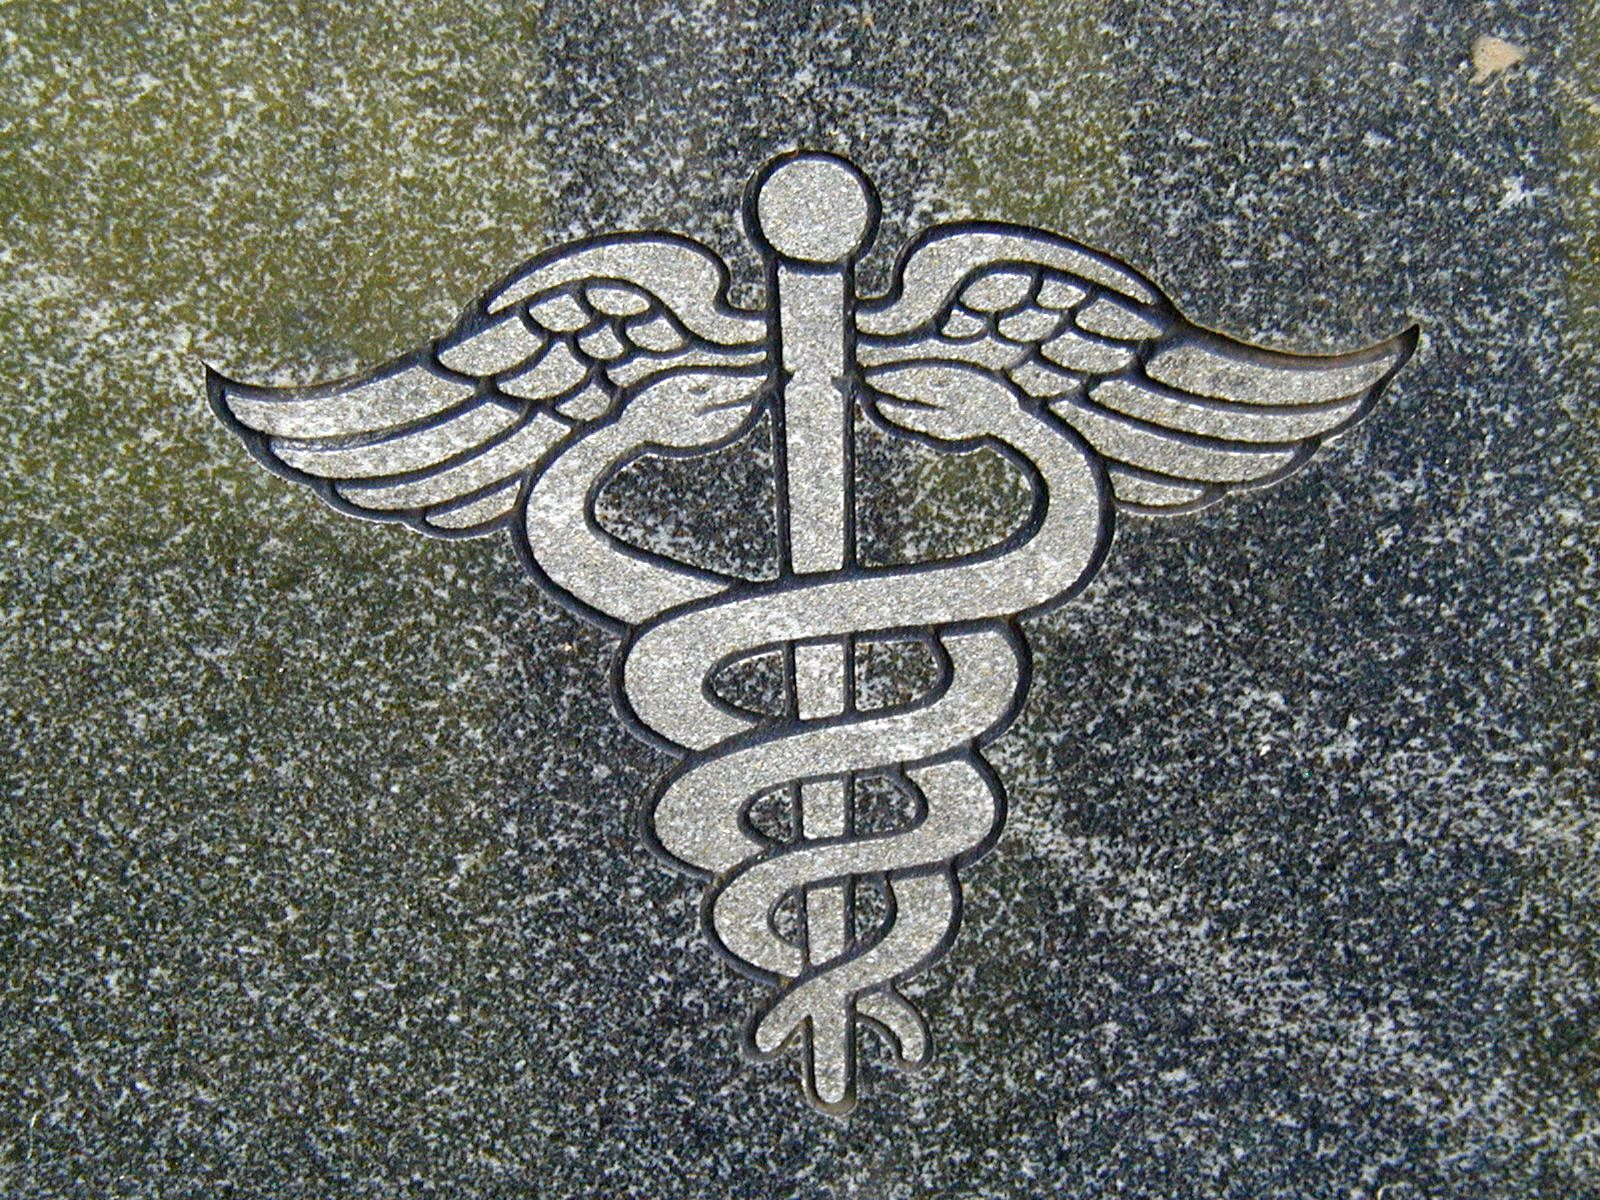 This Is Known As The Caduceus And It Has Been The Symbol Of The